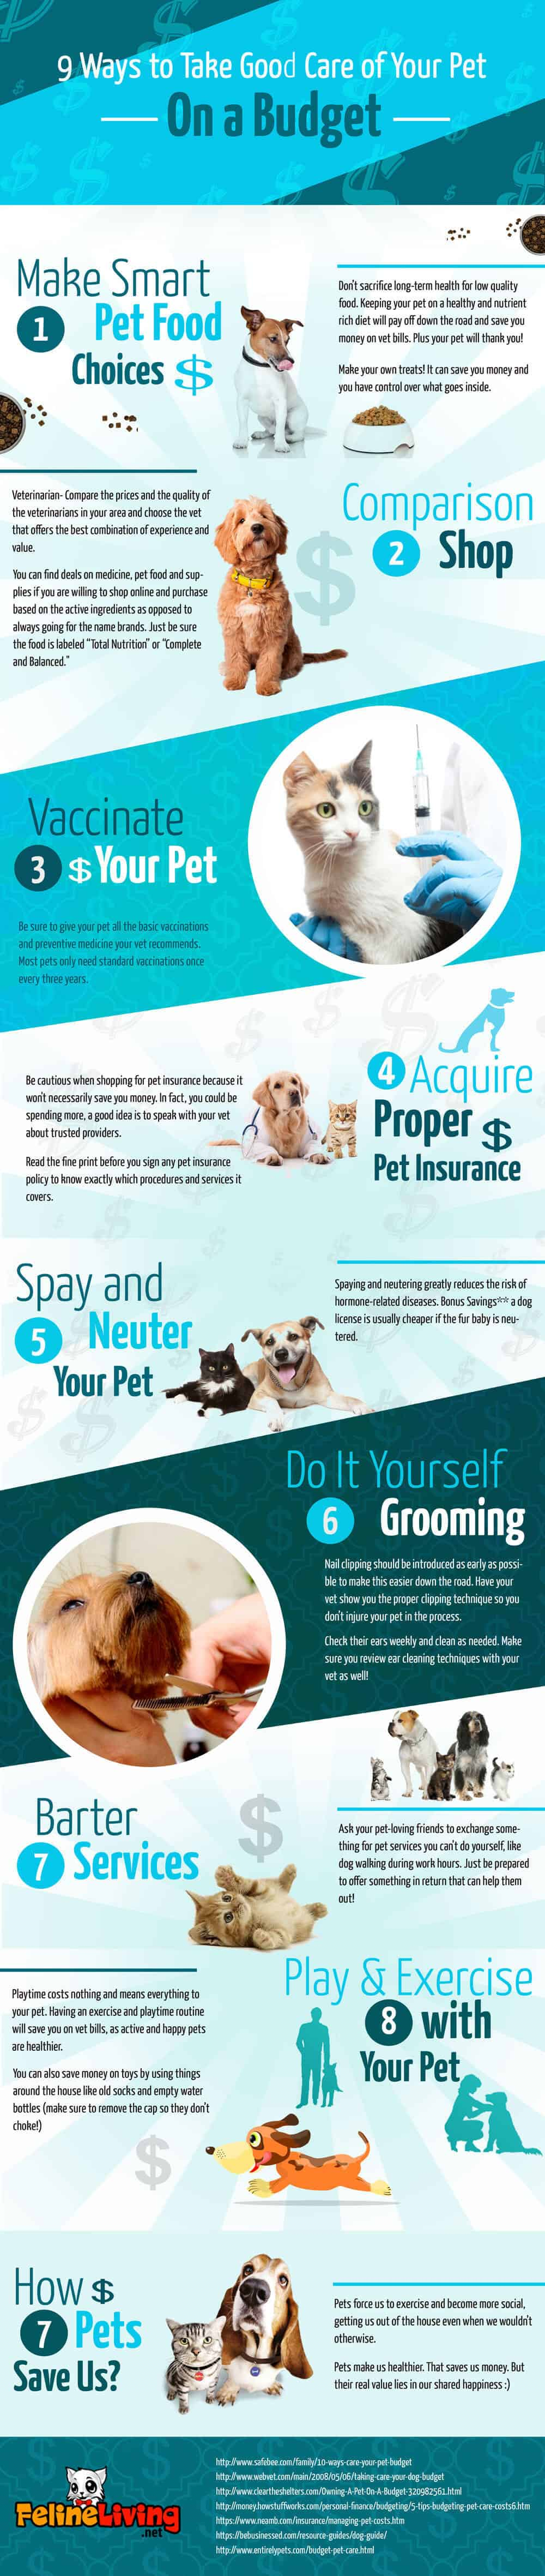 infographic listing ways to budget pet care